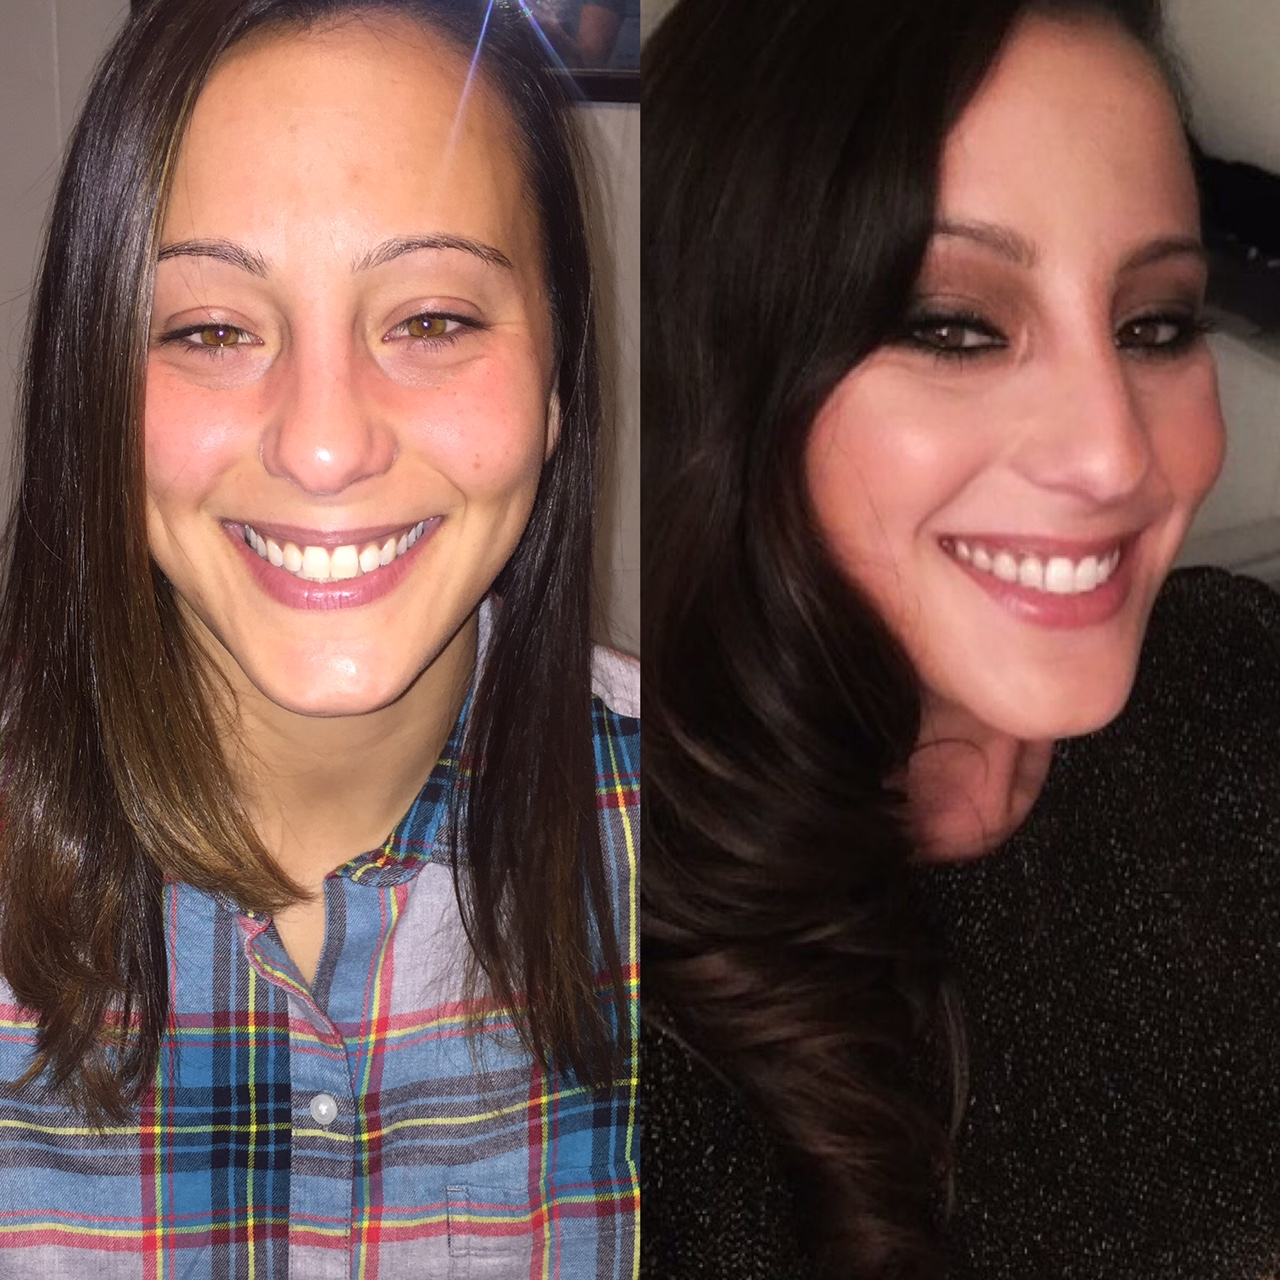 Hair & makeup before & after